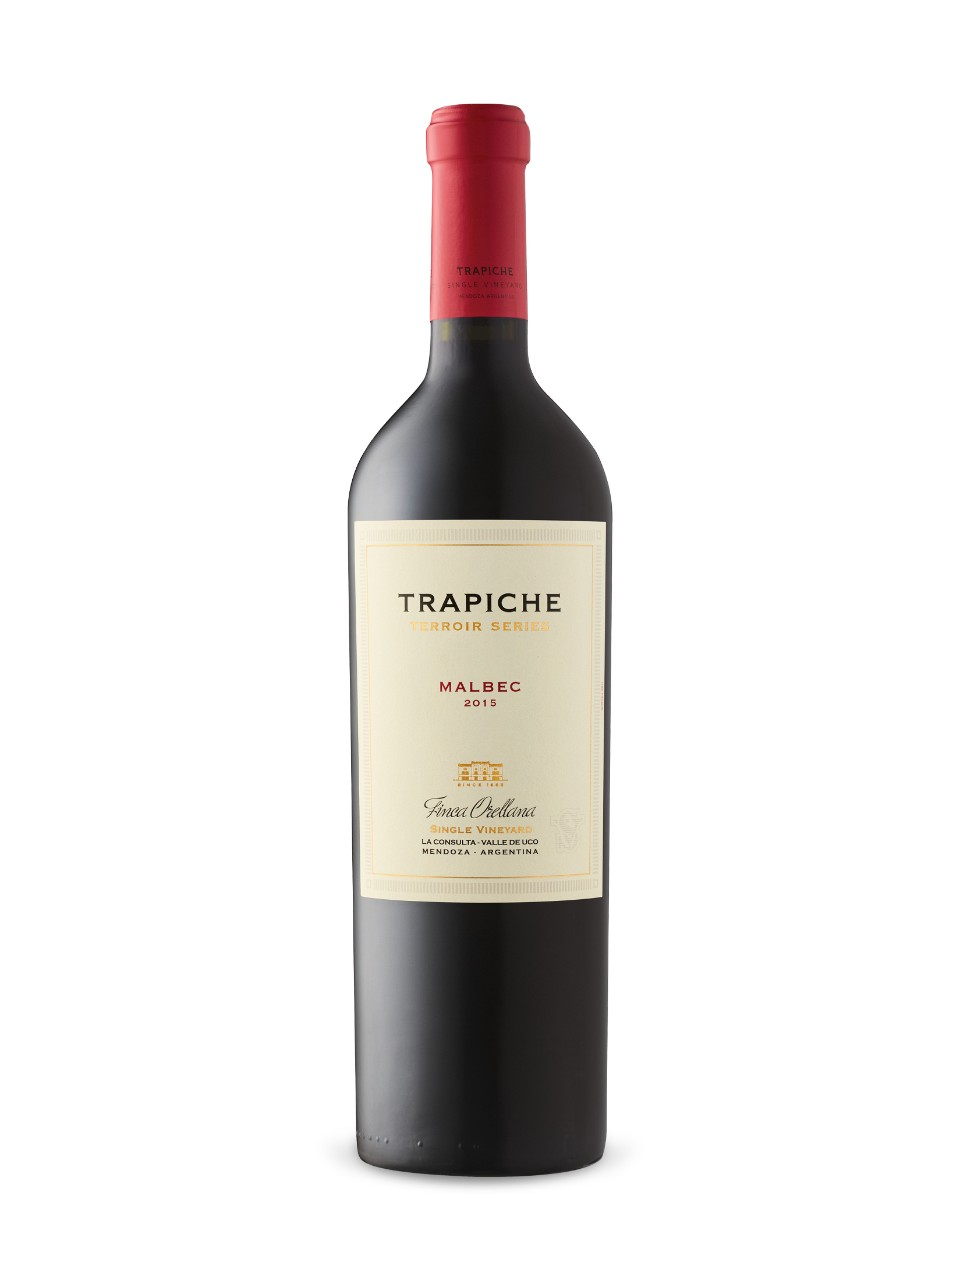 Trapiche Terroir Series Finca Orellana Single Vineyard Malbec 2013